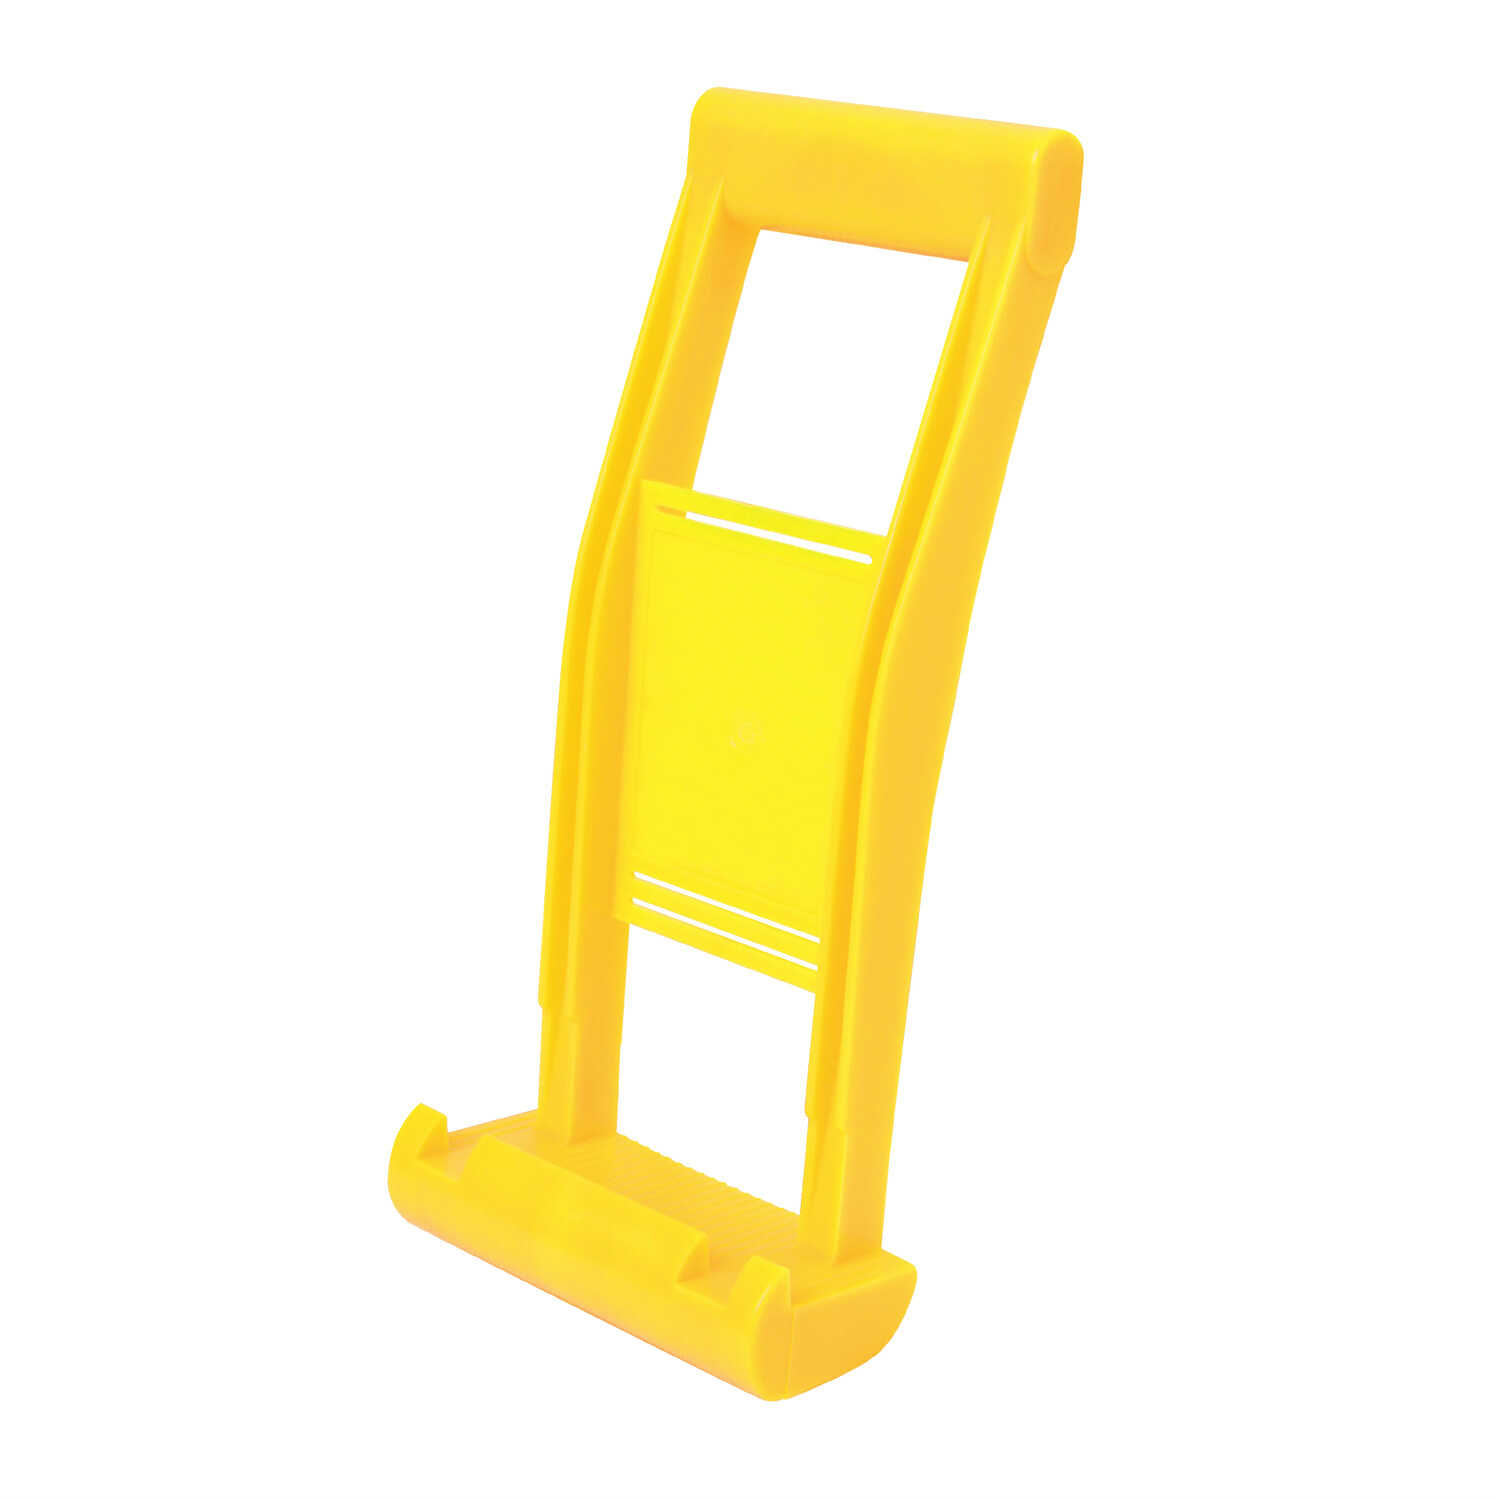 Stanley  High Visibility Yellow  Plastic  Panel Carrier  14 in. H x 6 in. W x 14 in. L